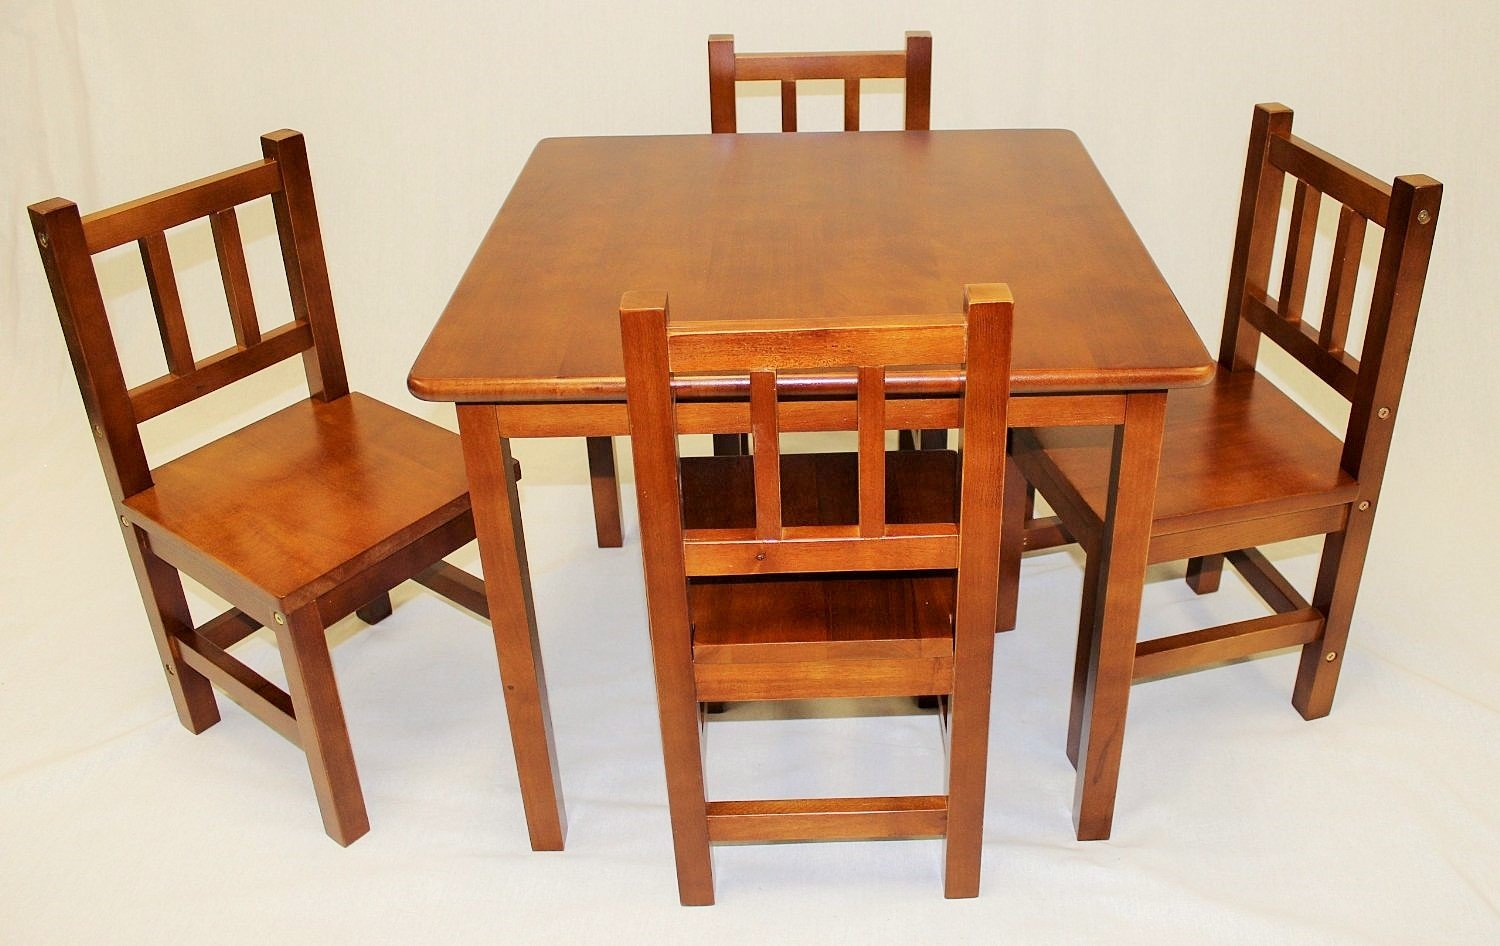 amazoncom ehemco kids table and 4 chairs set solid hard wood dark oak kitchen u0026 dining